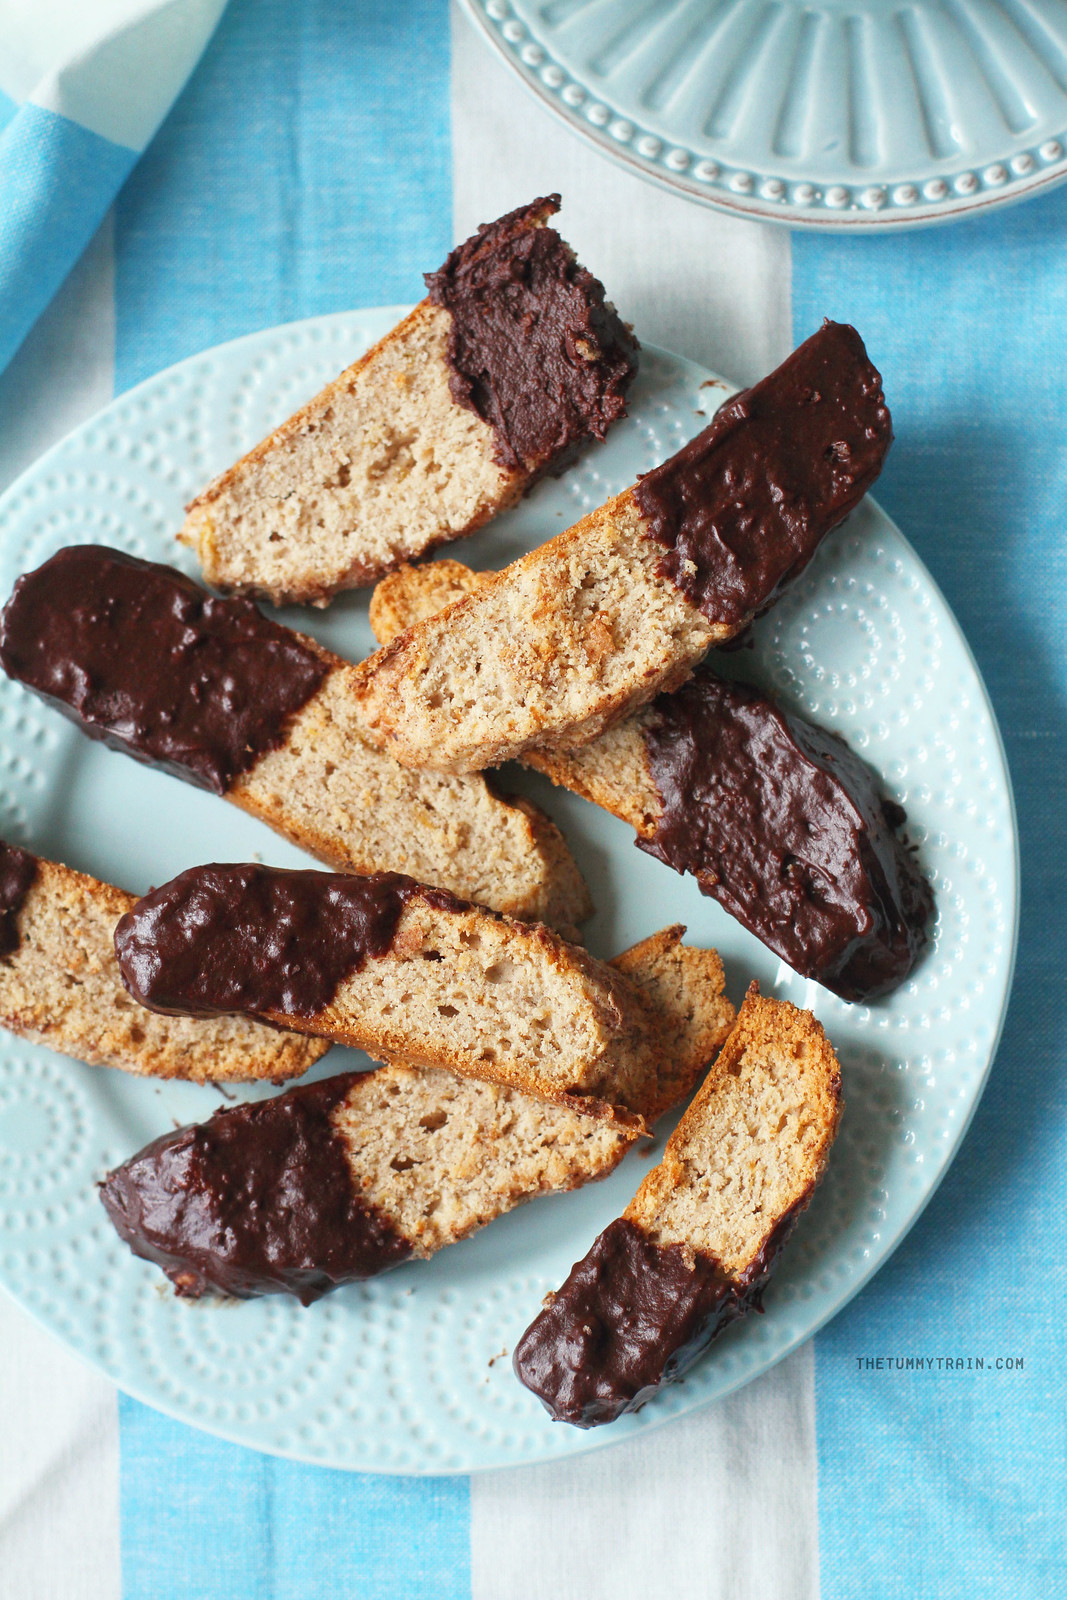 35337172162 7934e7d28a h - These Banana Bread Biscotti with Chocolate are the most epic biscotti ever!